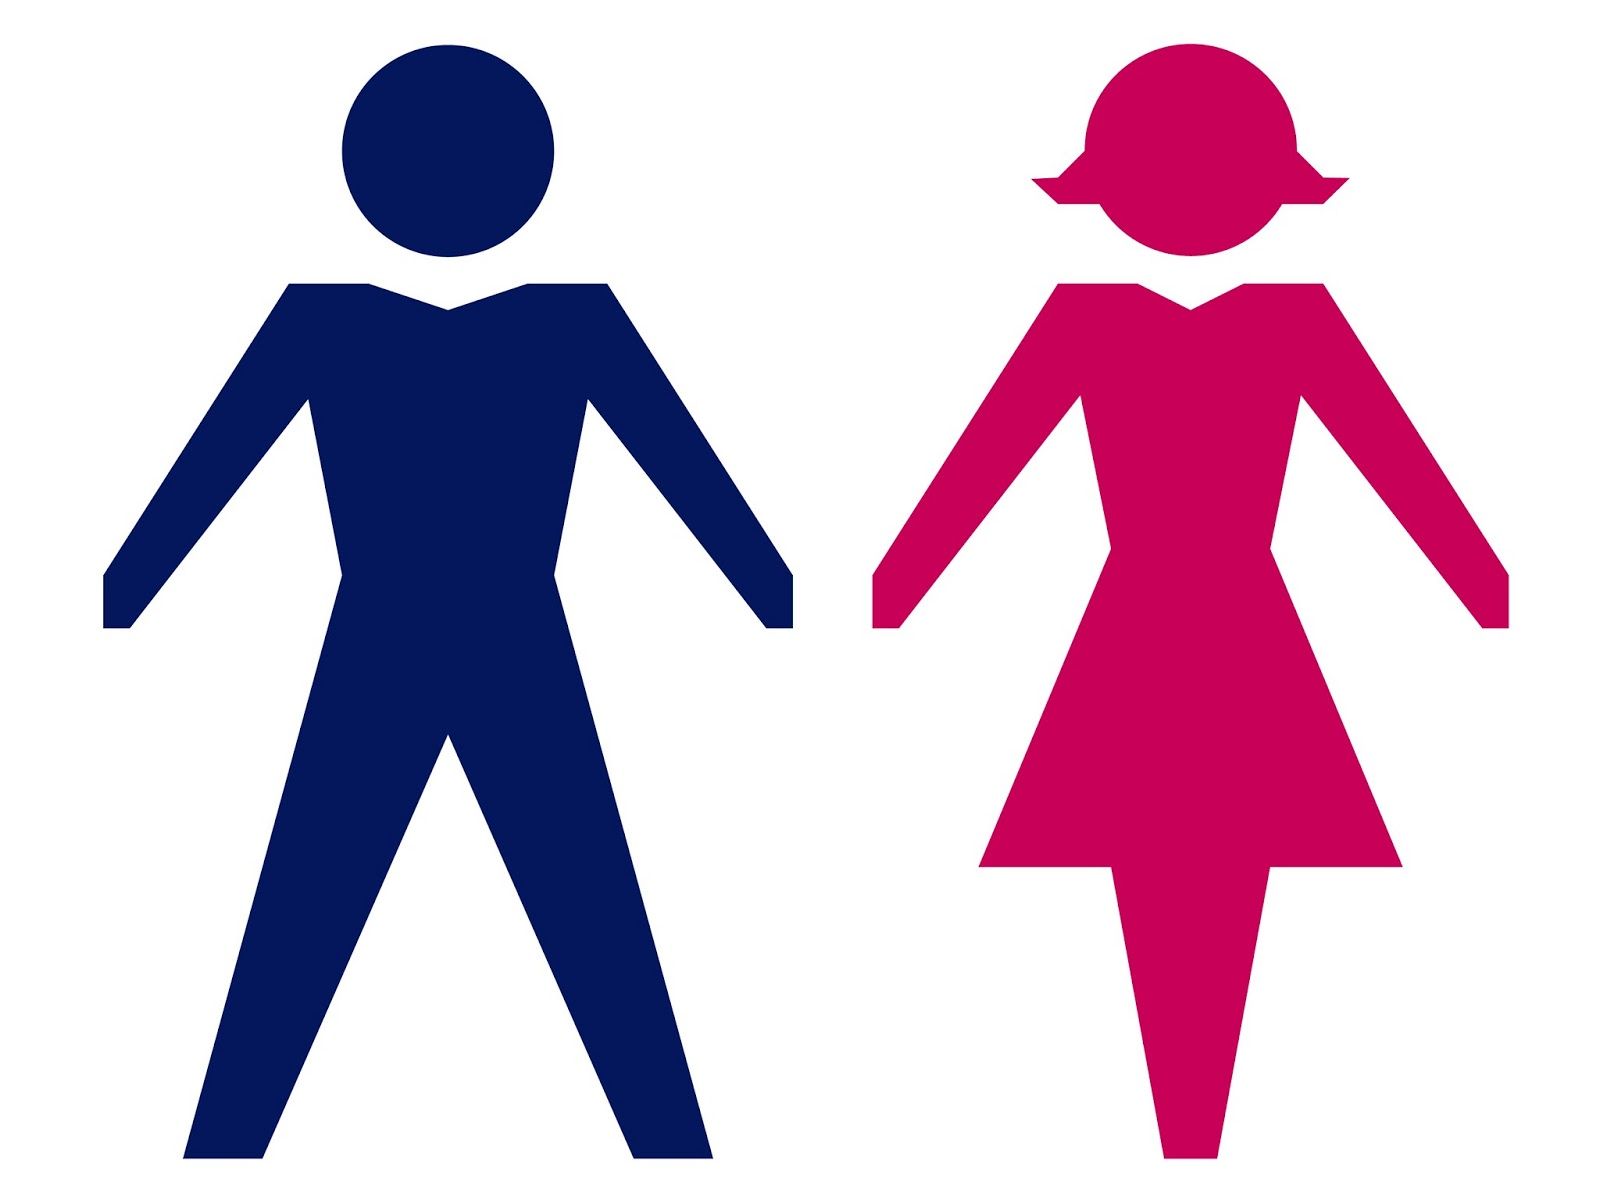 Pictures of men and women